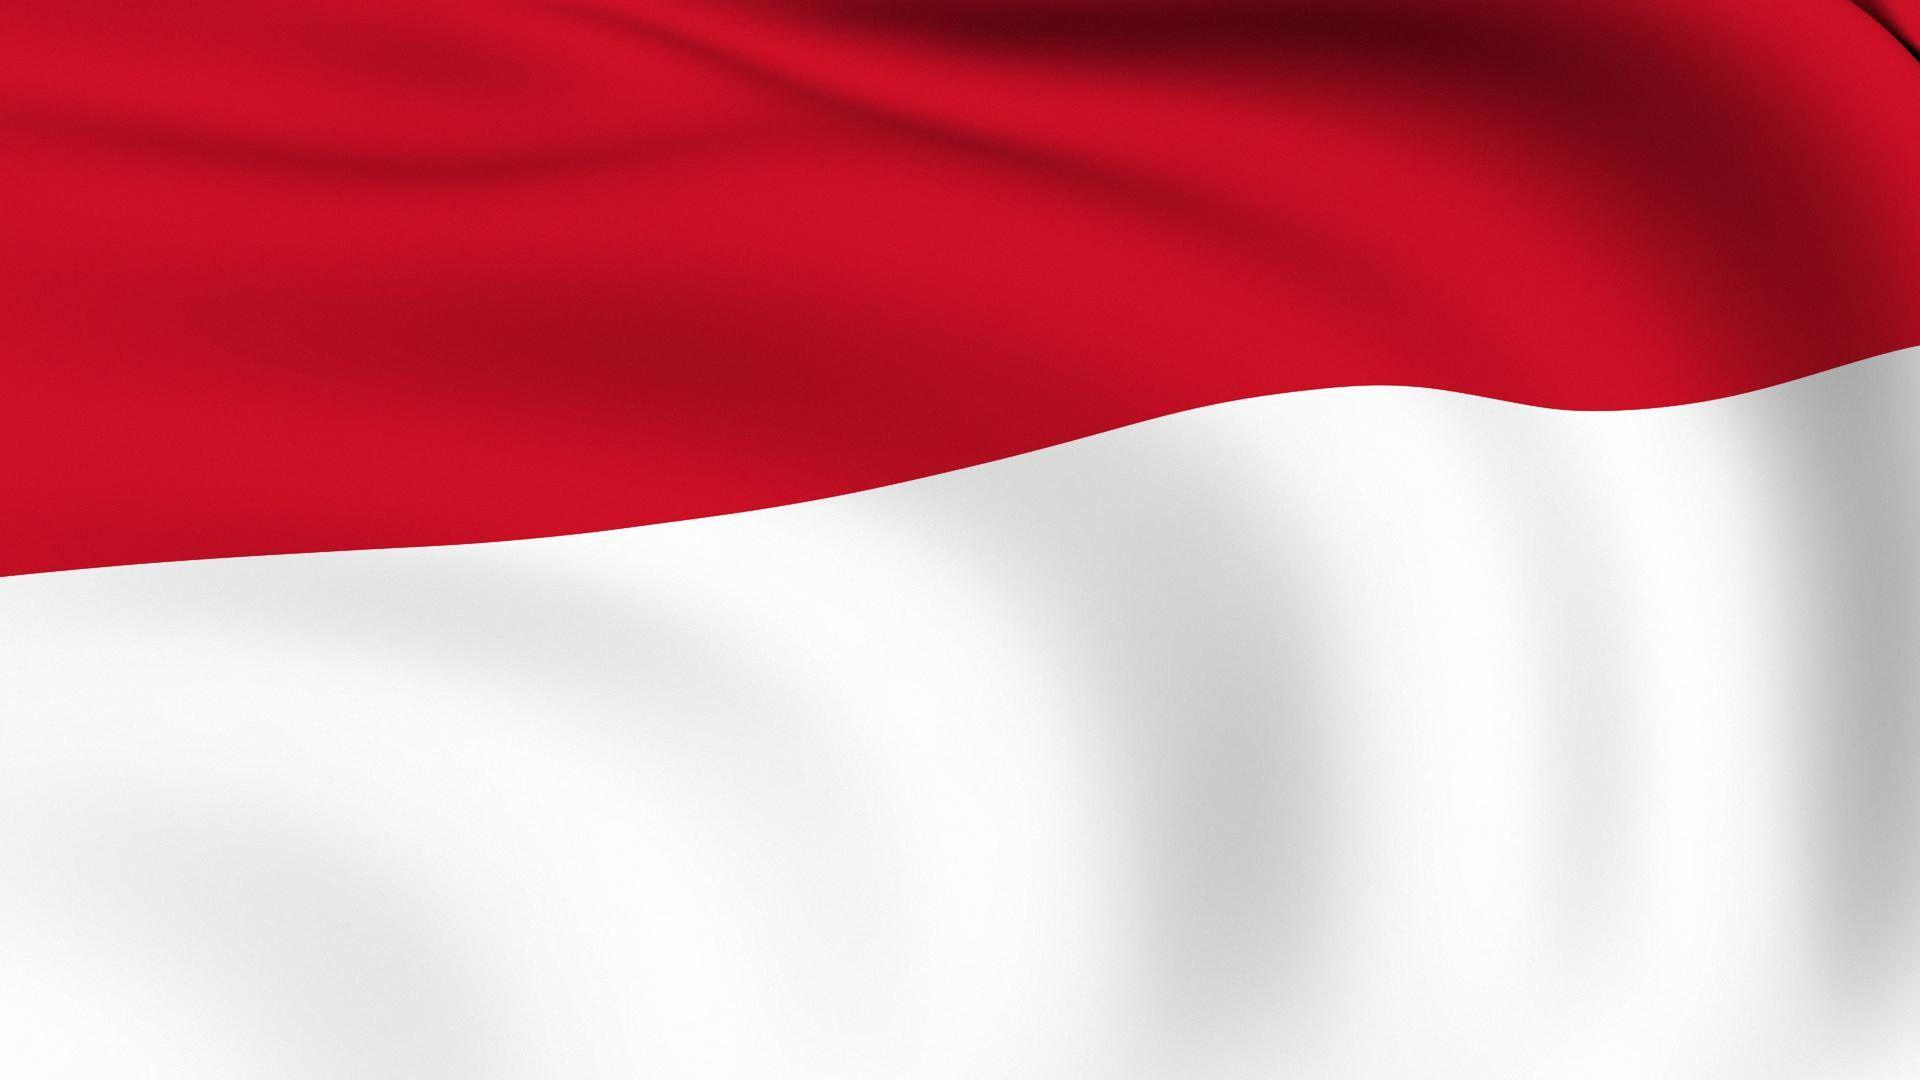 Bendera merah putih wallpaper HD2